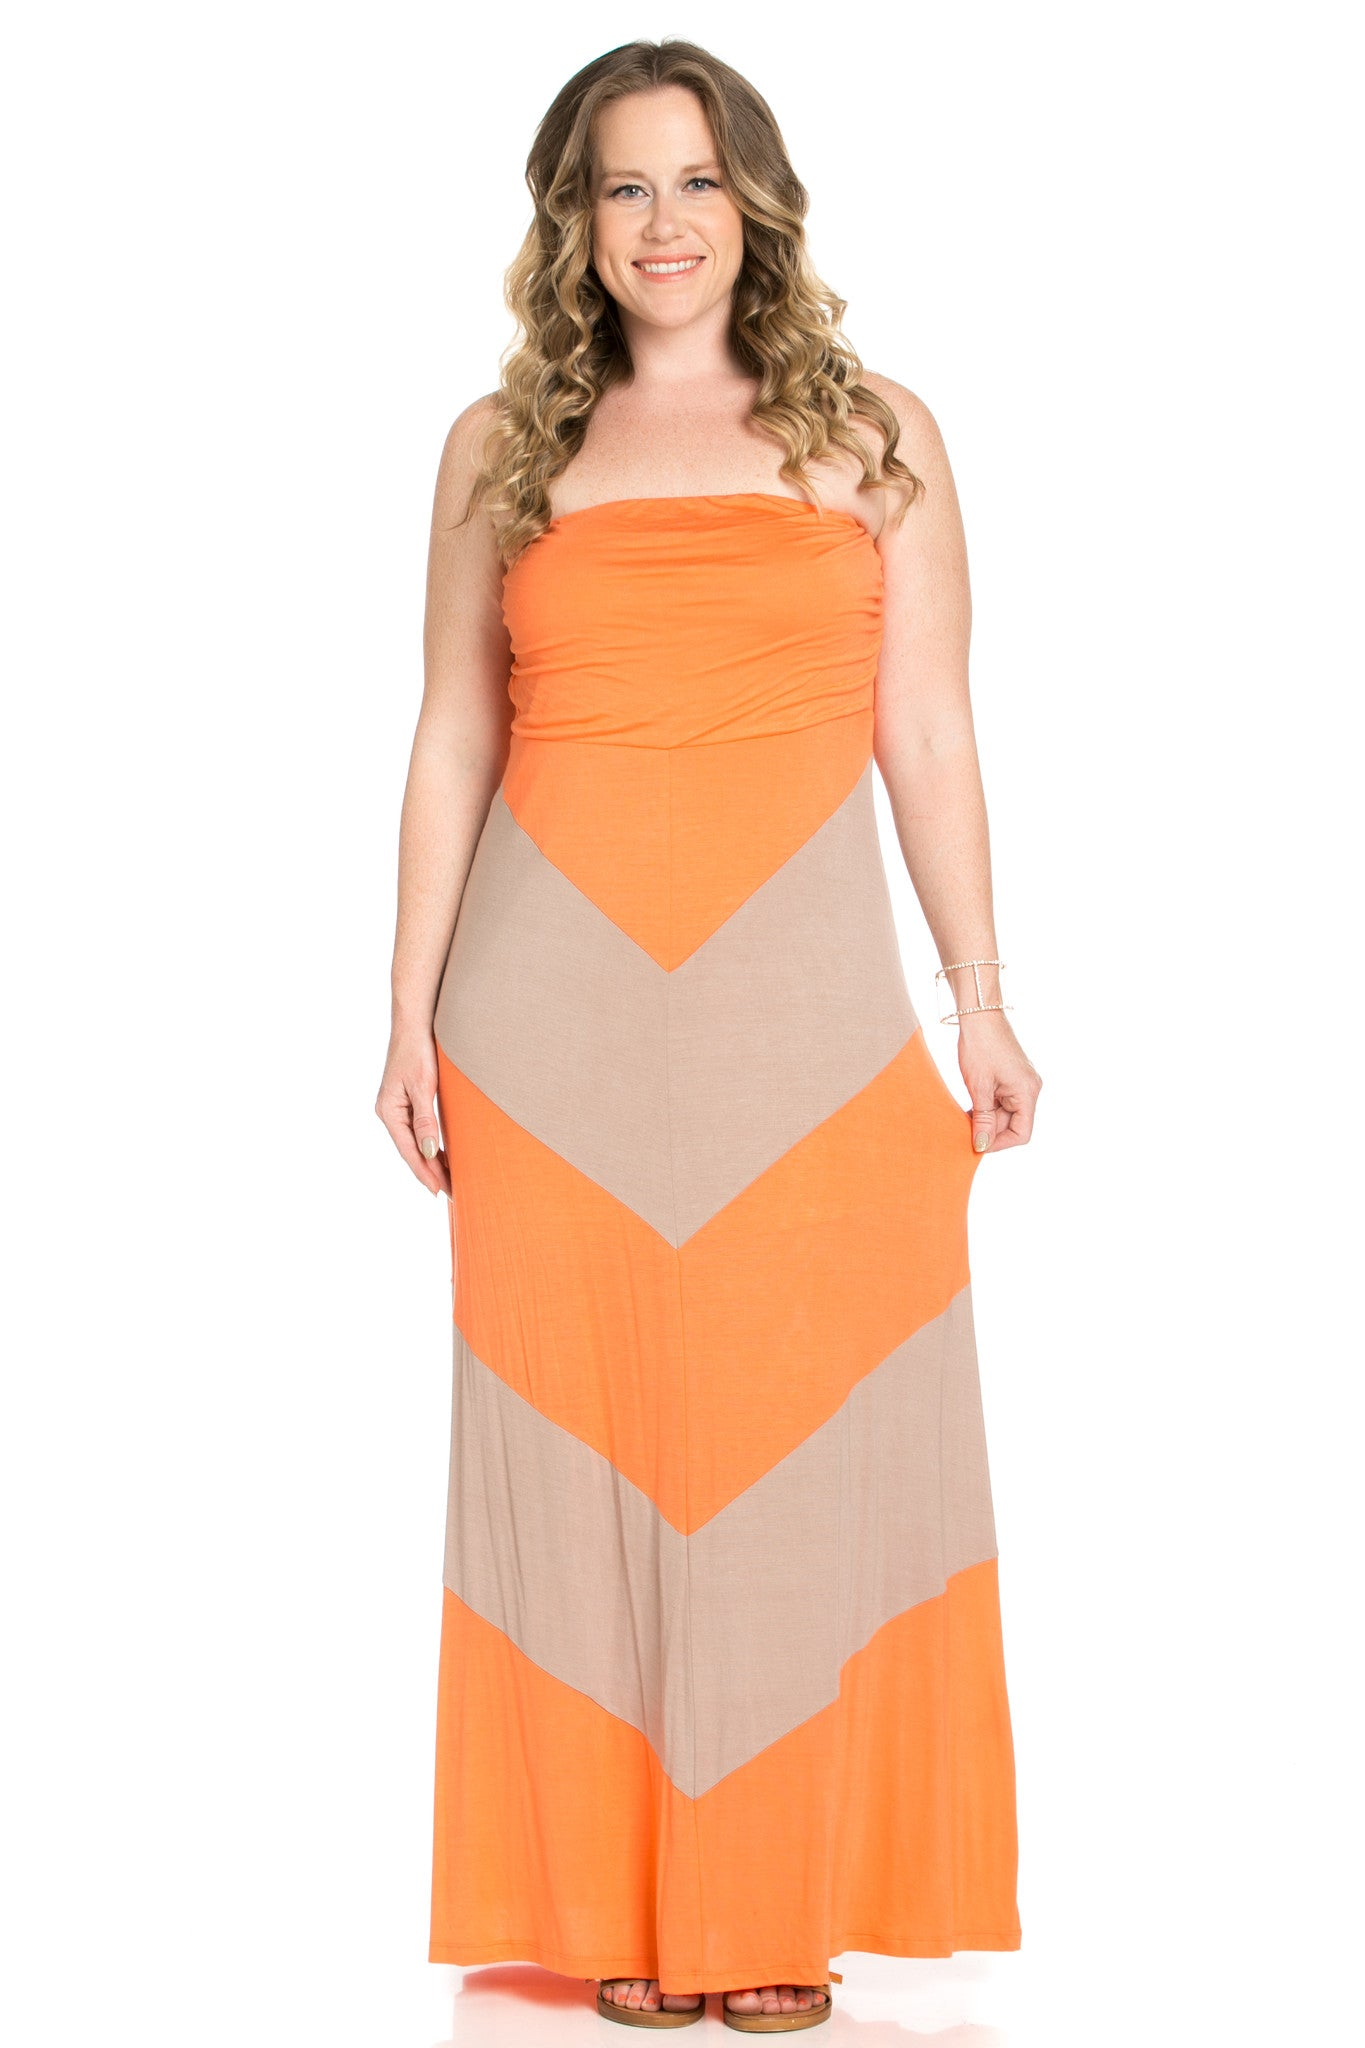 Strapless Long tube Dress Peach/Mocha Cause You're Chevron - Dresses - My Yuccie - 2